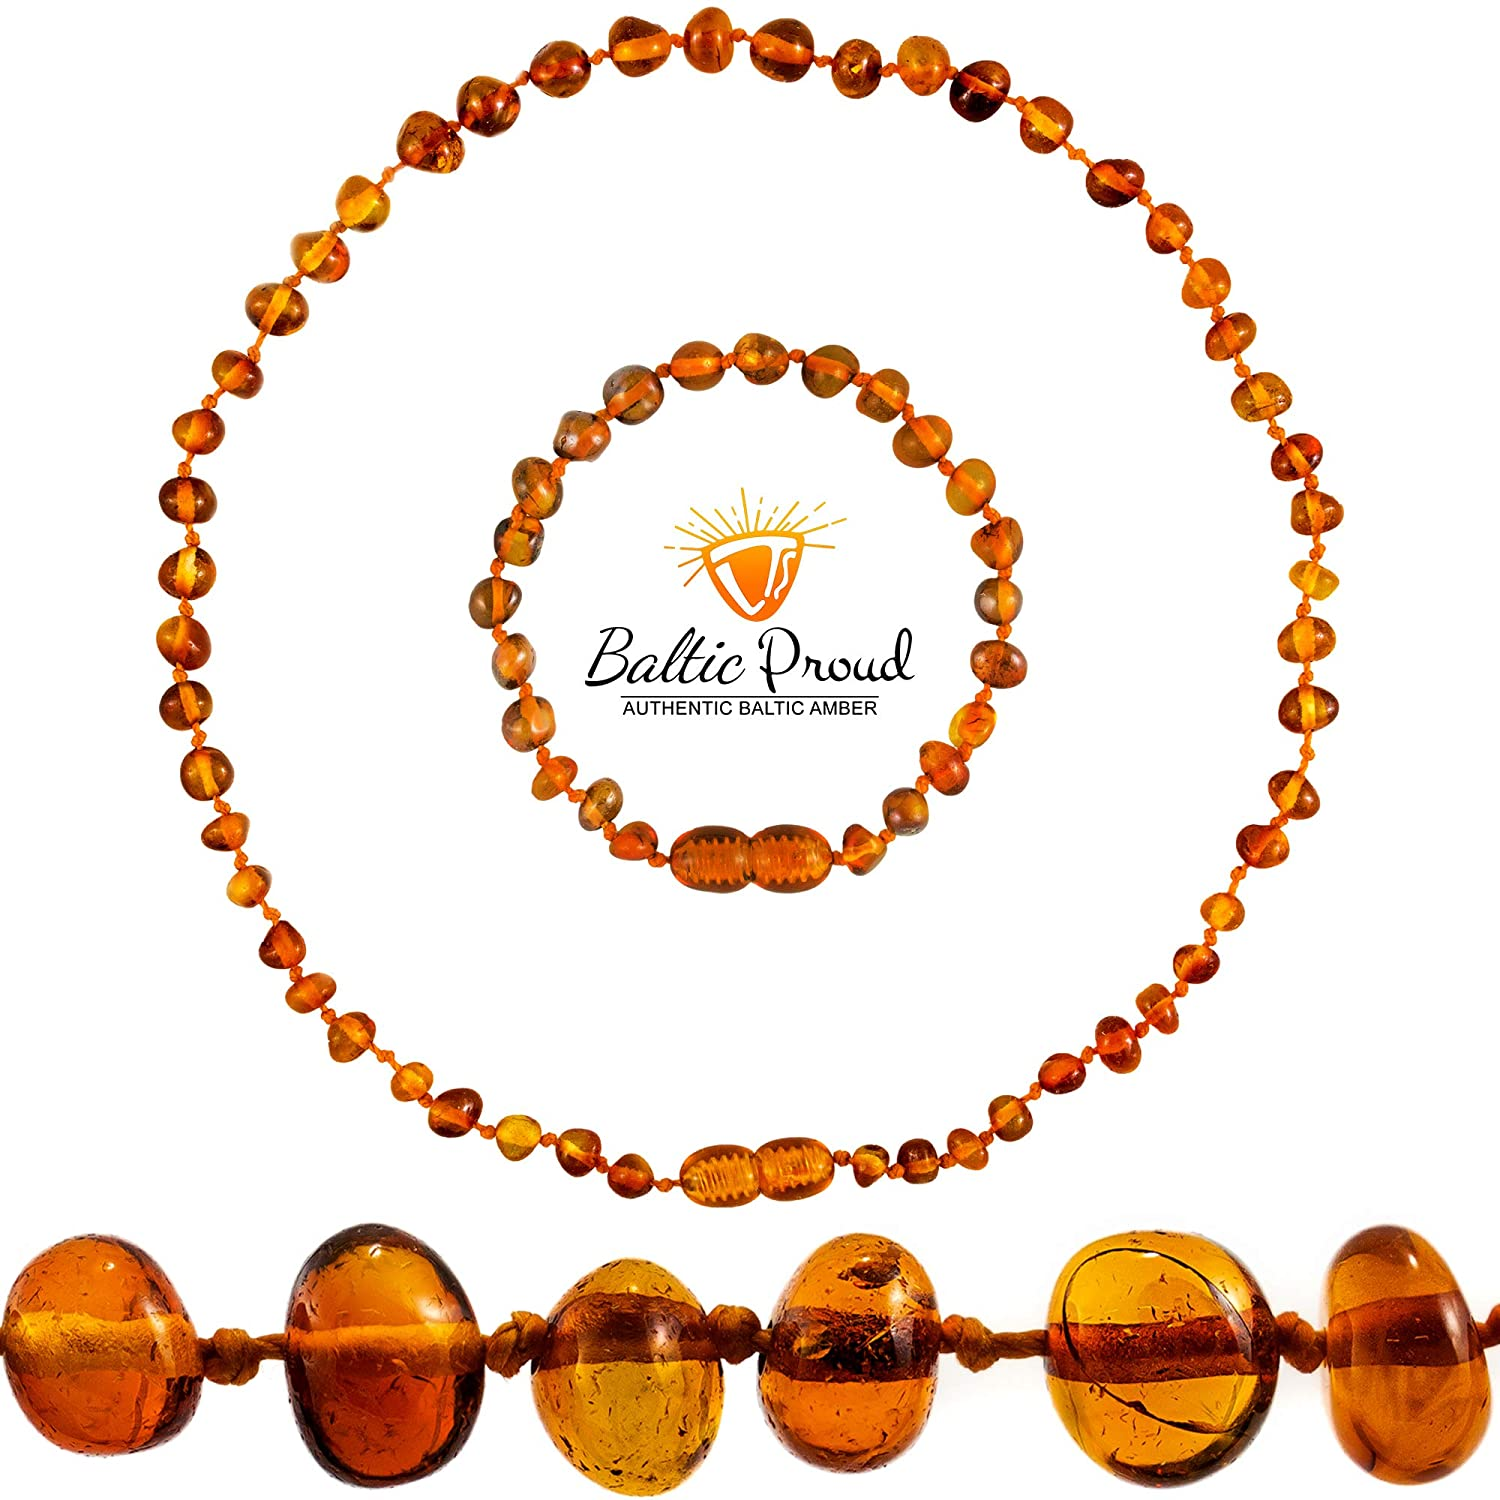 Amber necklace amber donut beads amber doughnut necklace amber leather jewelry amber and leather amber natural Baltic amber jewelry